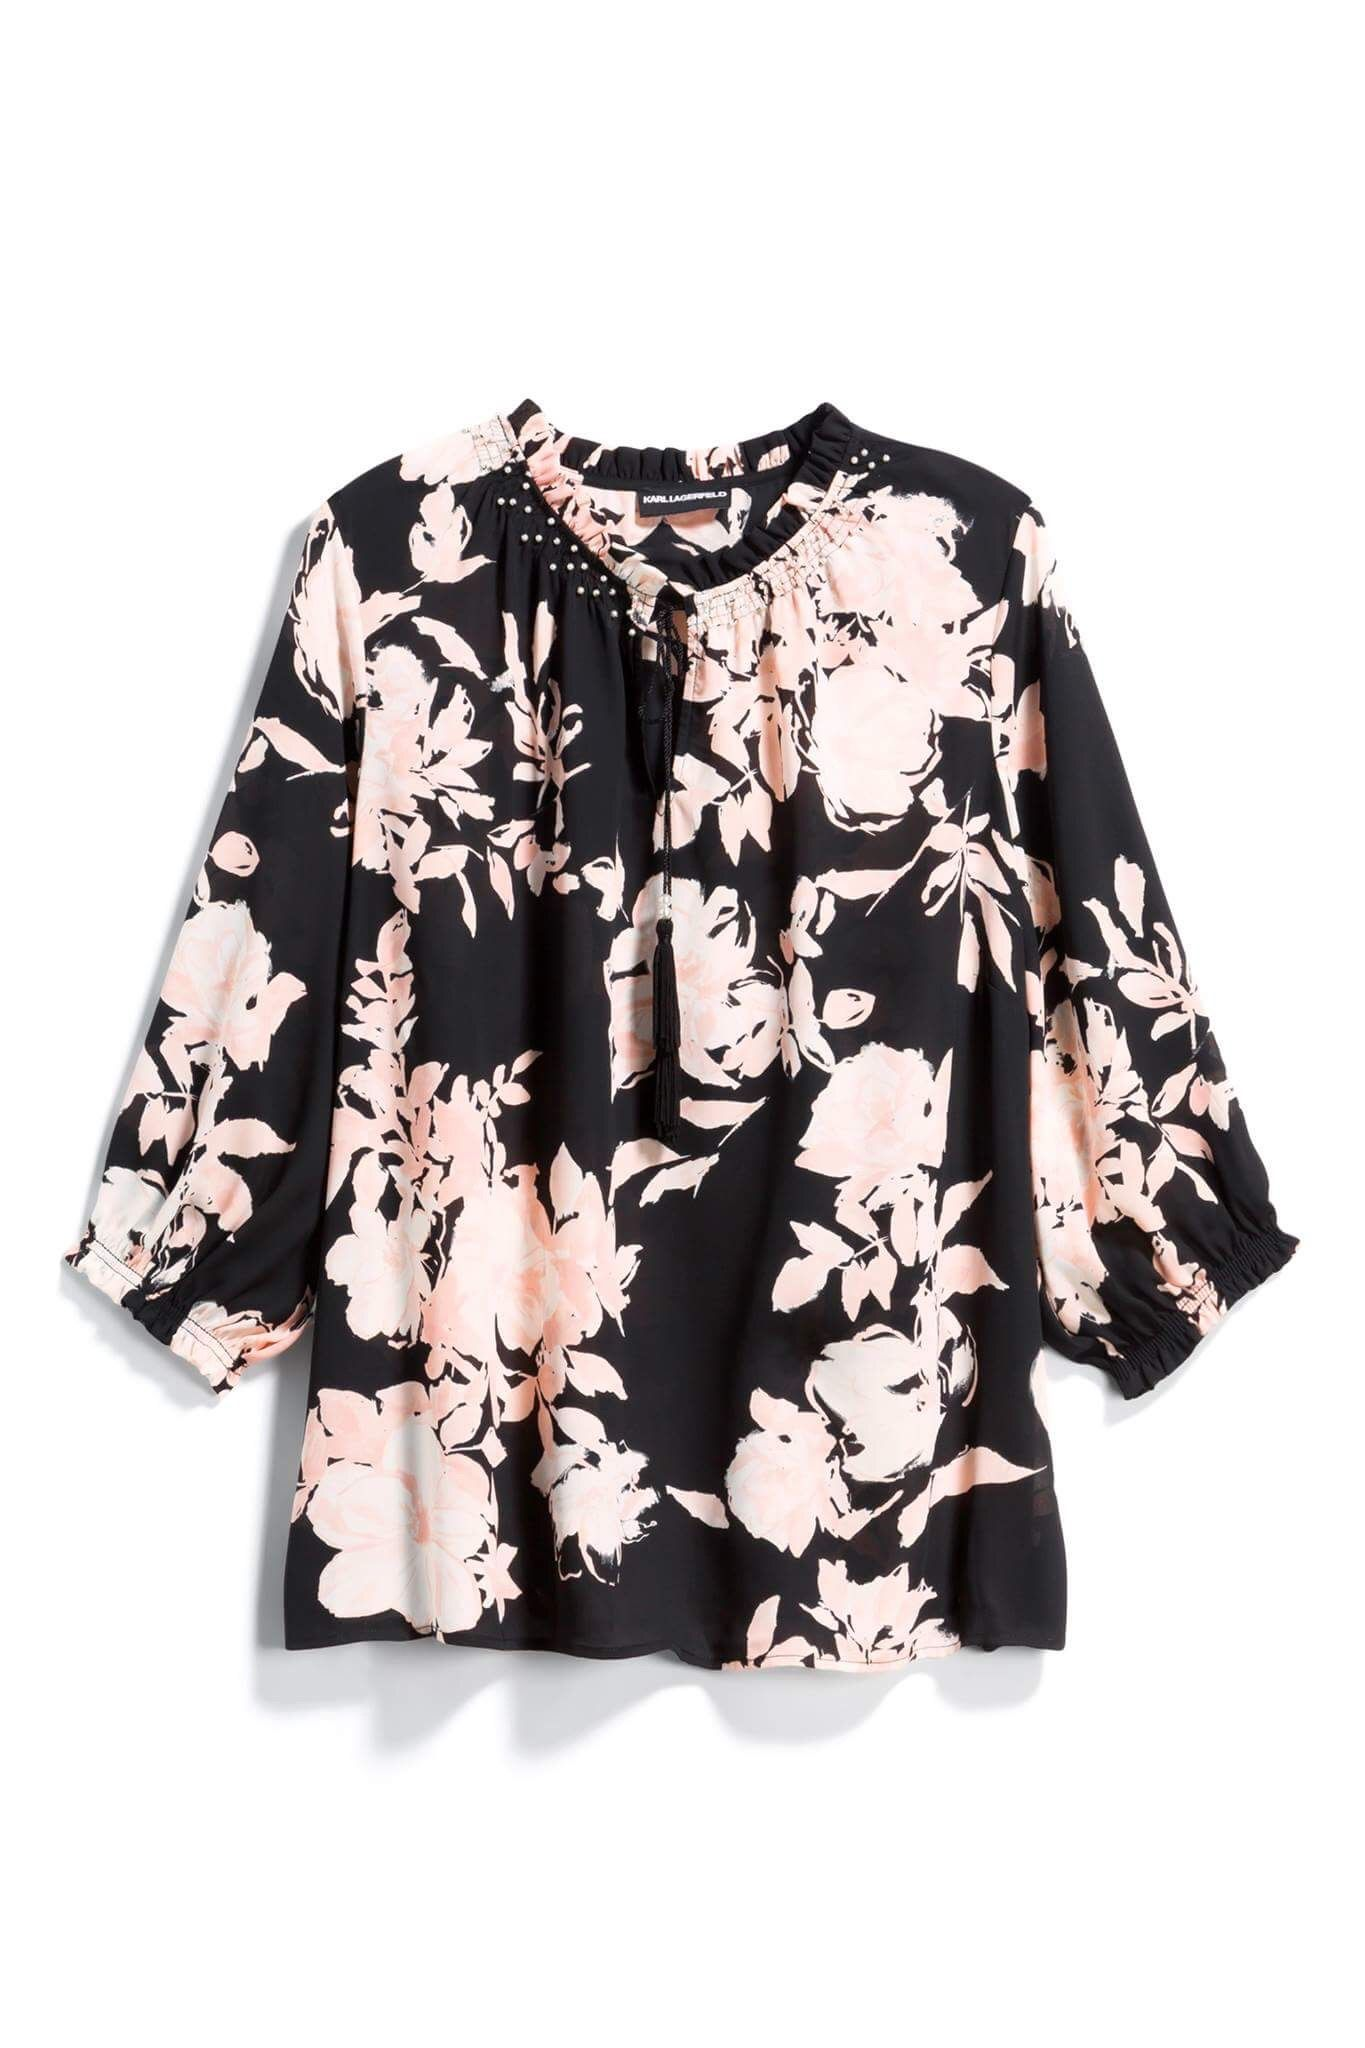 I Adore This Black And Pink Floral Blouse From Stitch Fix Sign Up